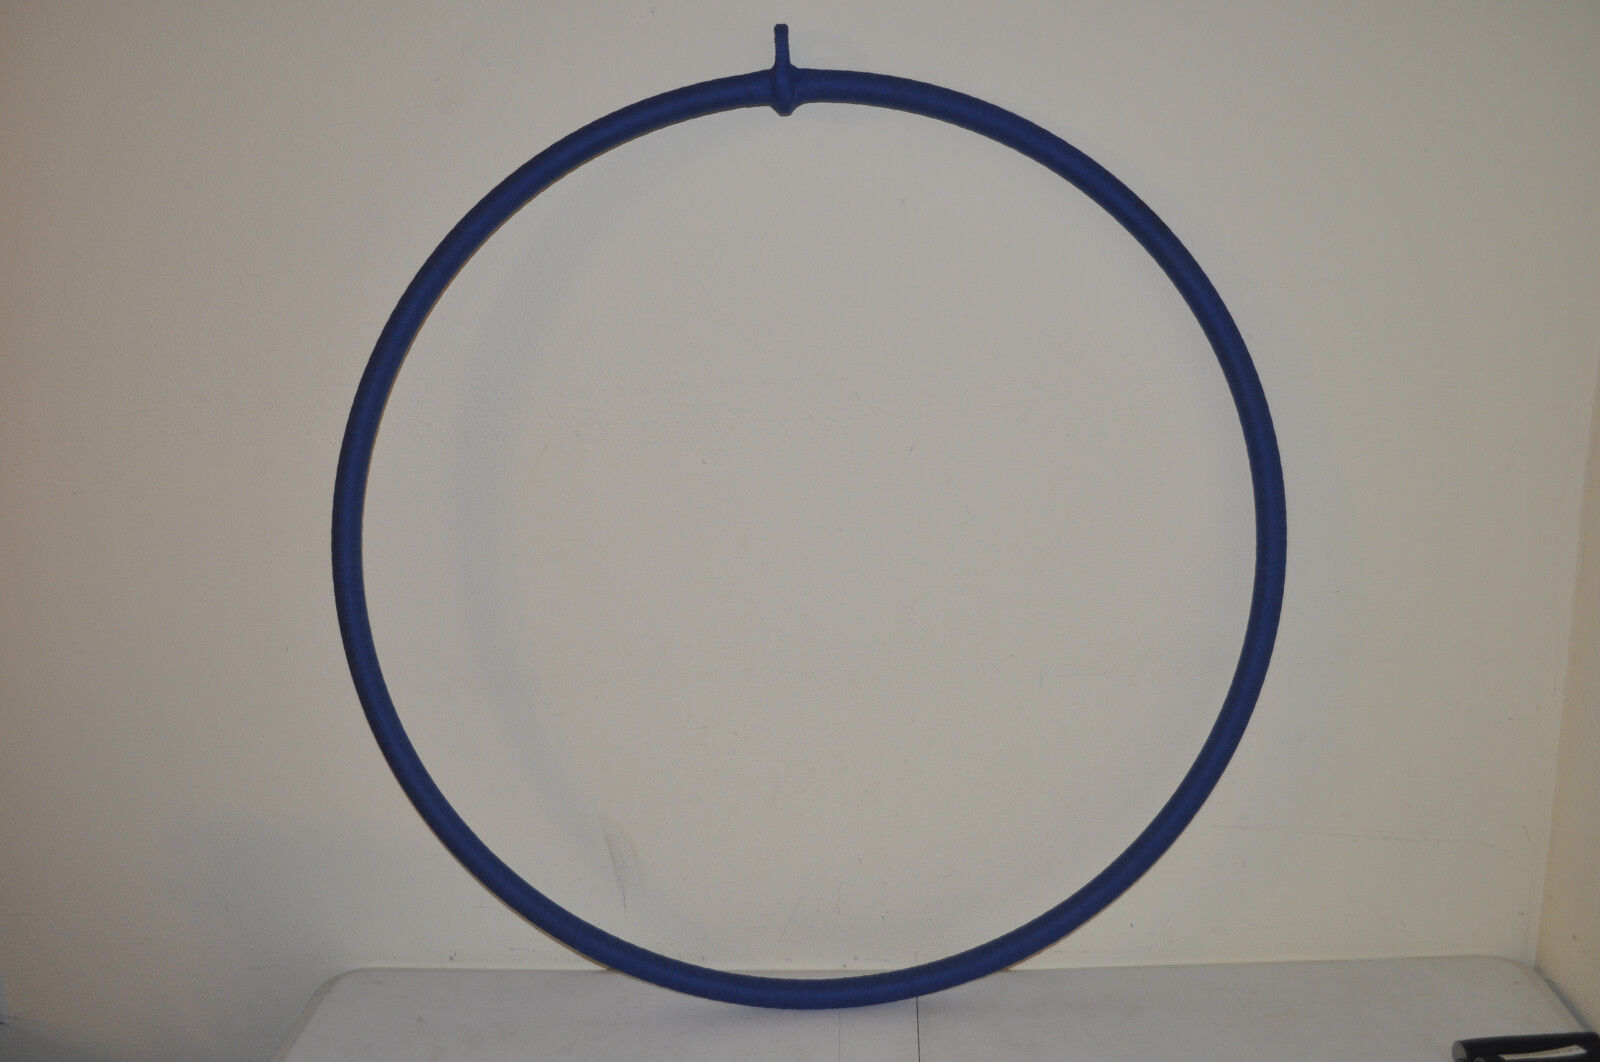 31  Lyra Hoop Circus Aerial equipment Yoga Cerceau 1  Diameter 15 colors